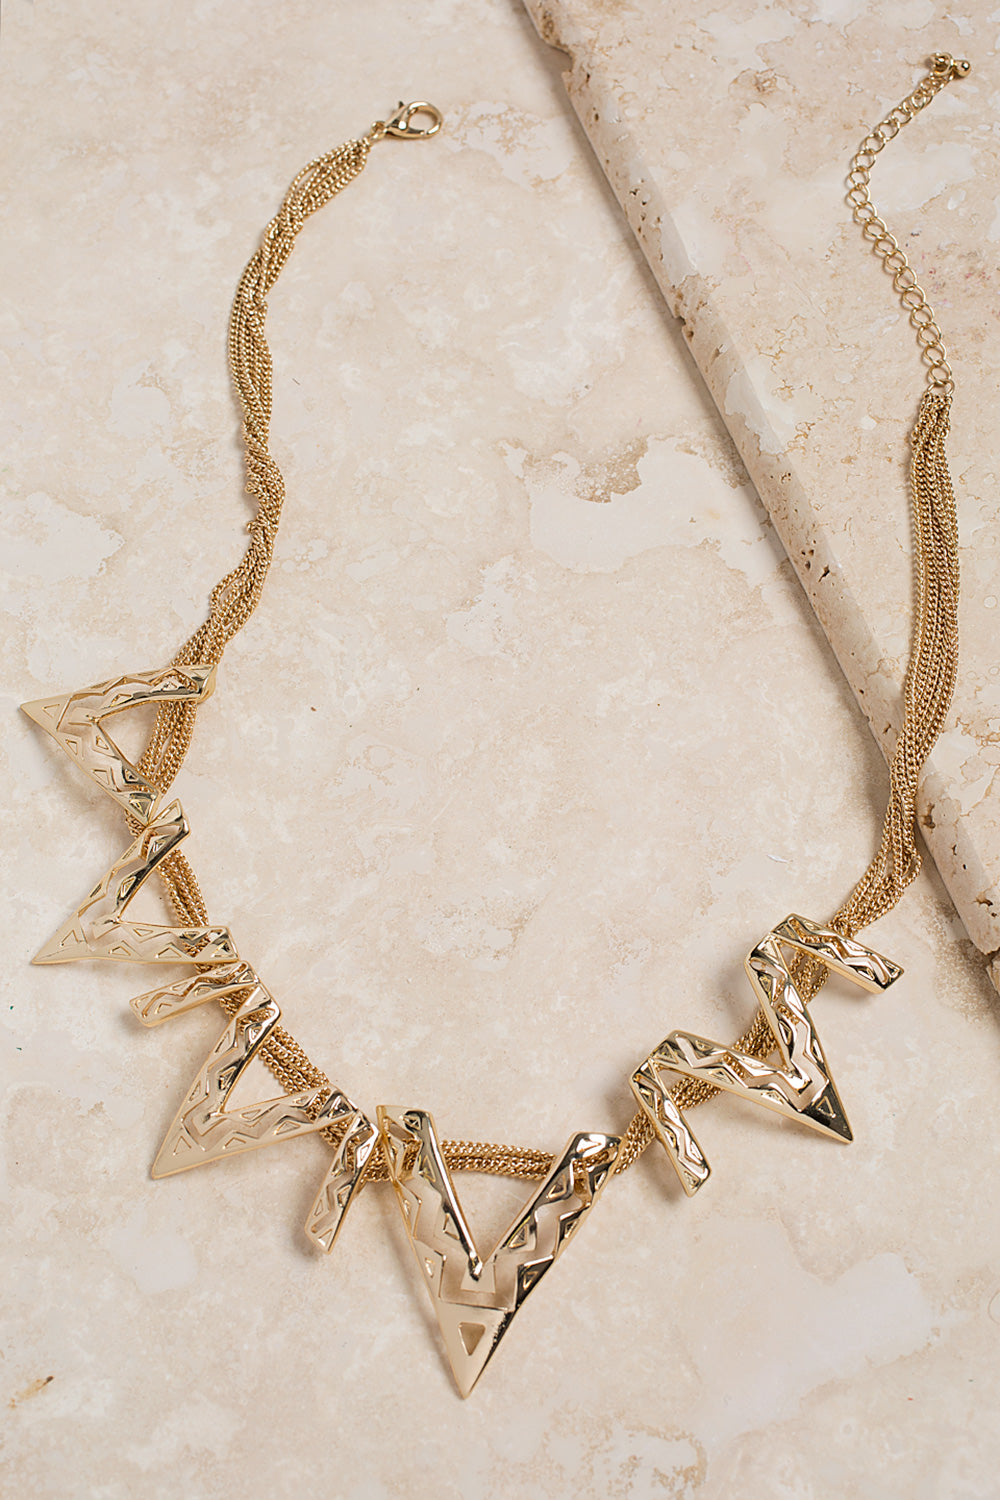 Type 3 Jagged Z Necklace